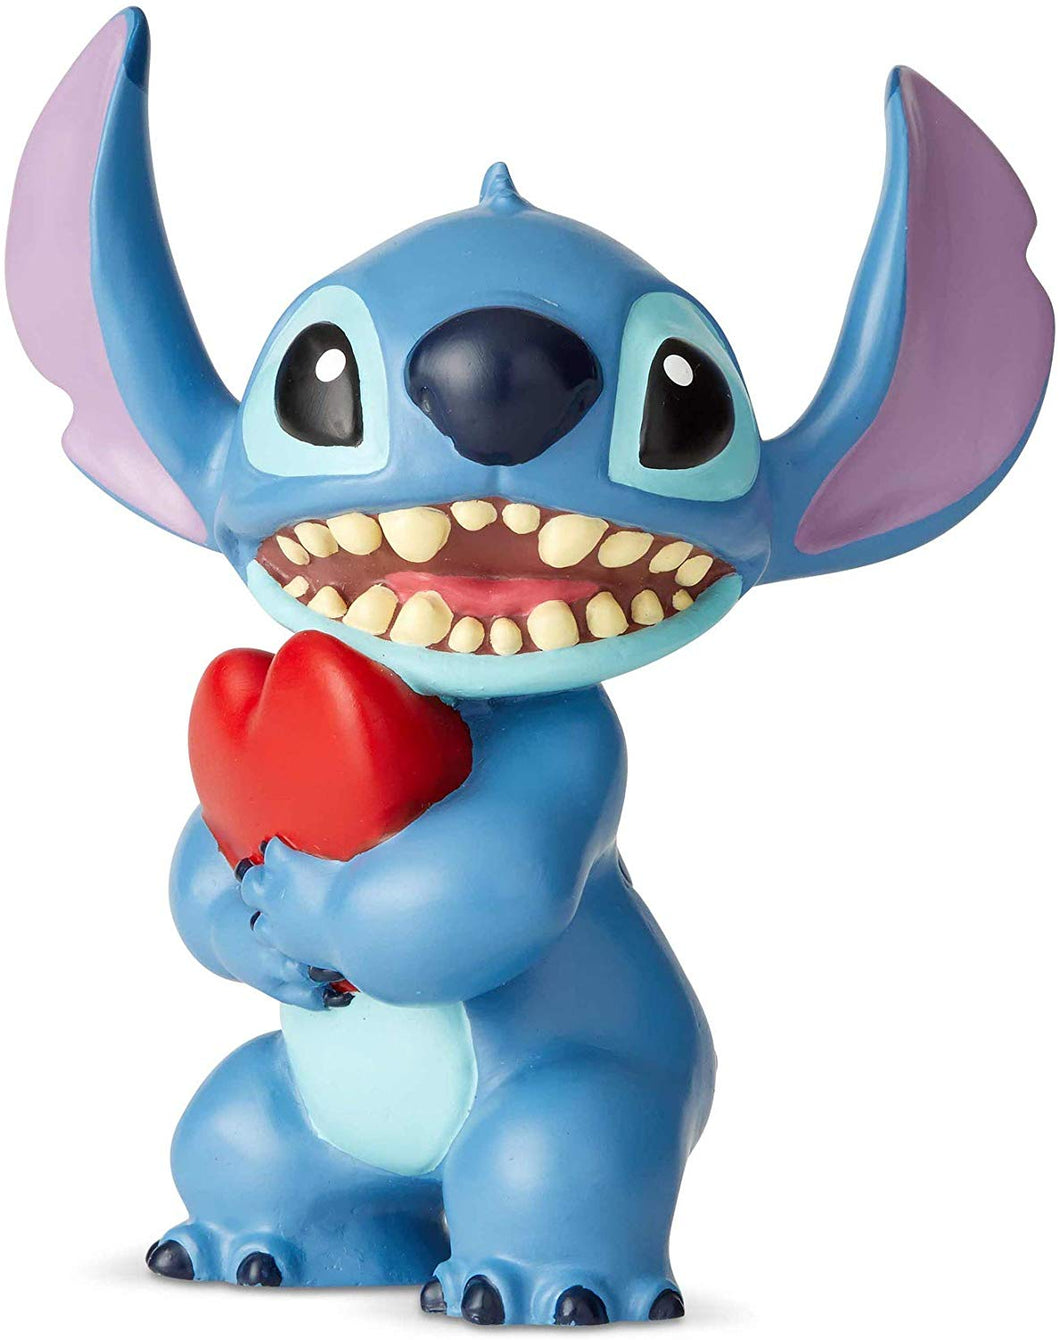 Enesco Disney Showcase Lilo and Stitch Heart Mini Figurine